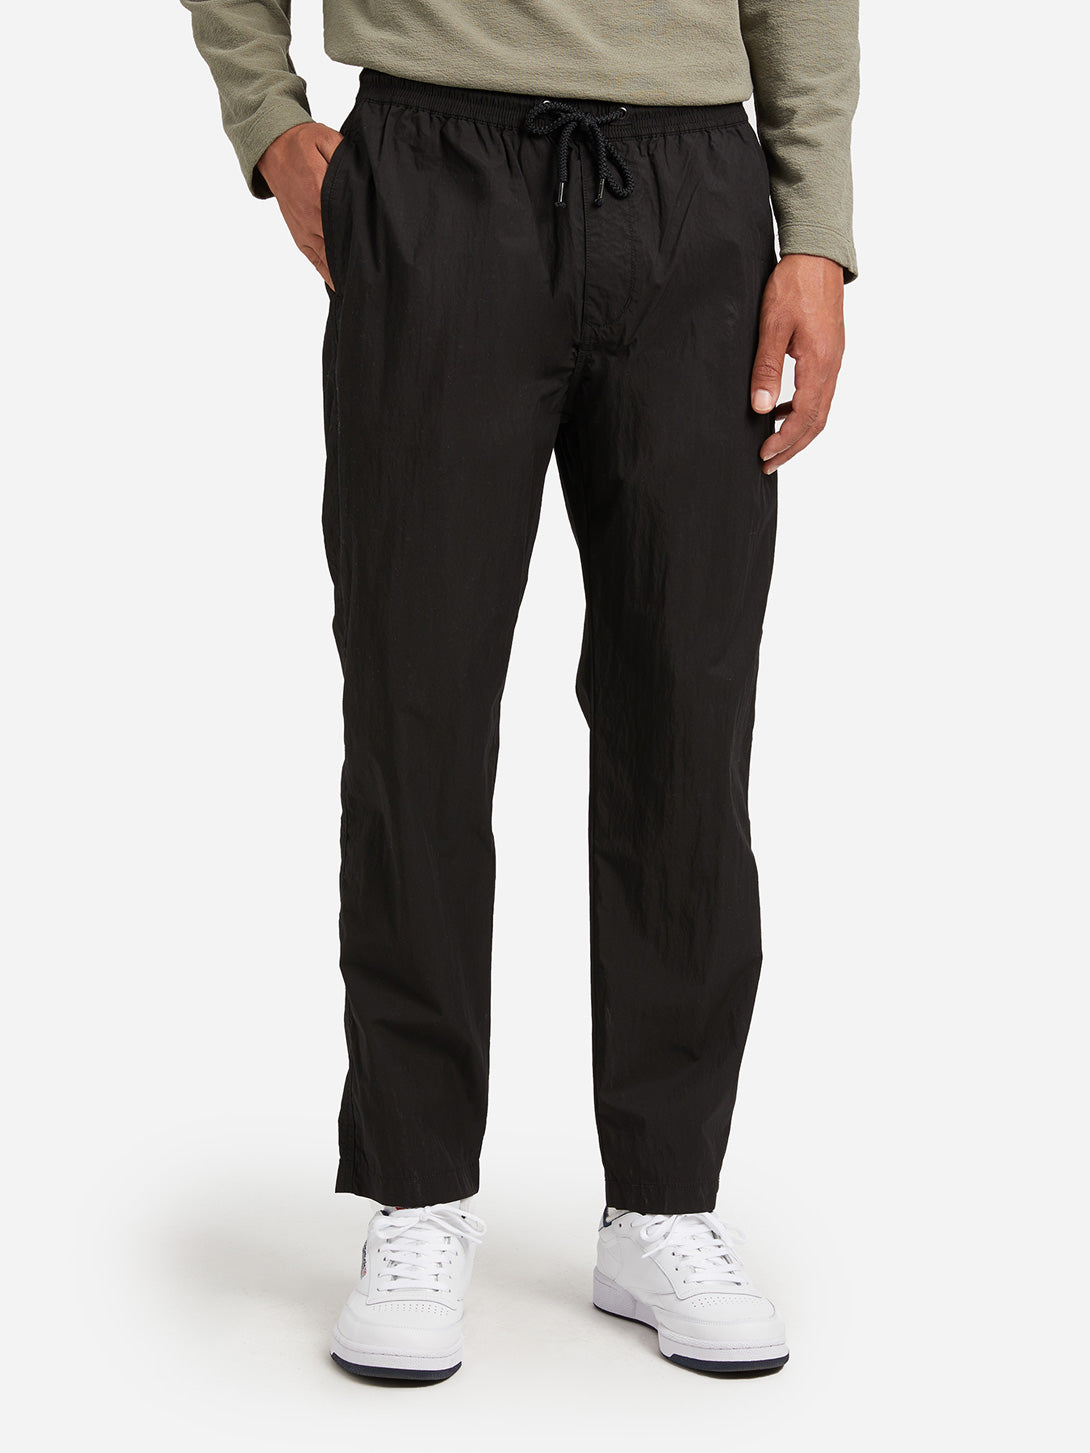 JET BLACK mens chino pants crosby pant ons clothing